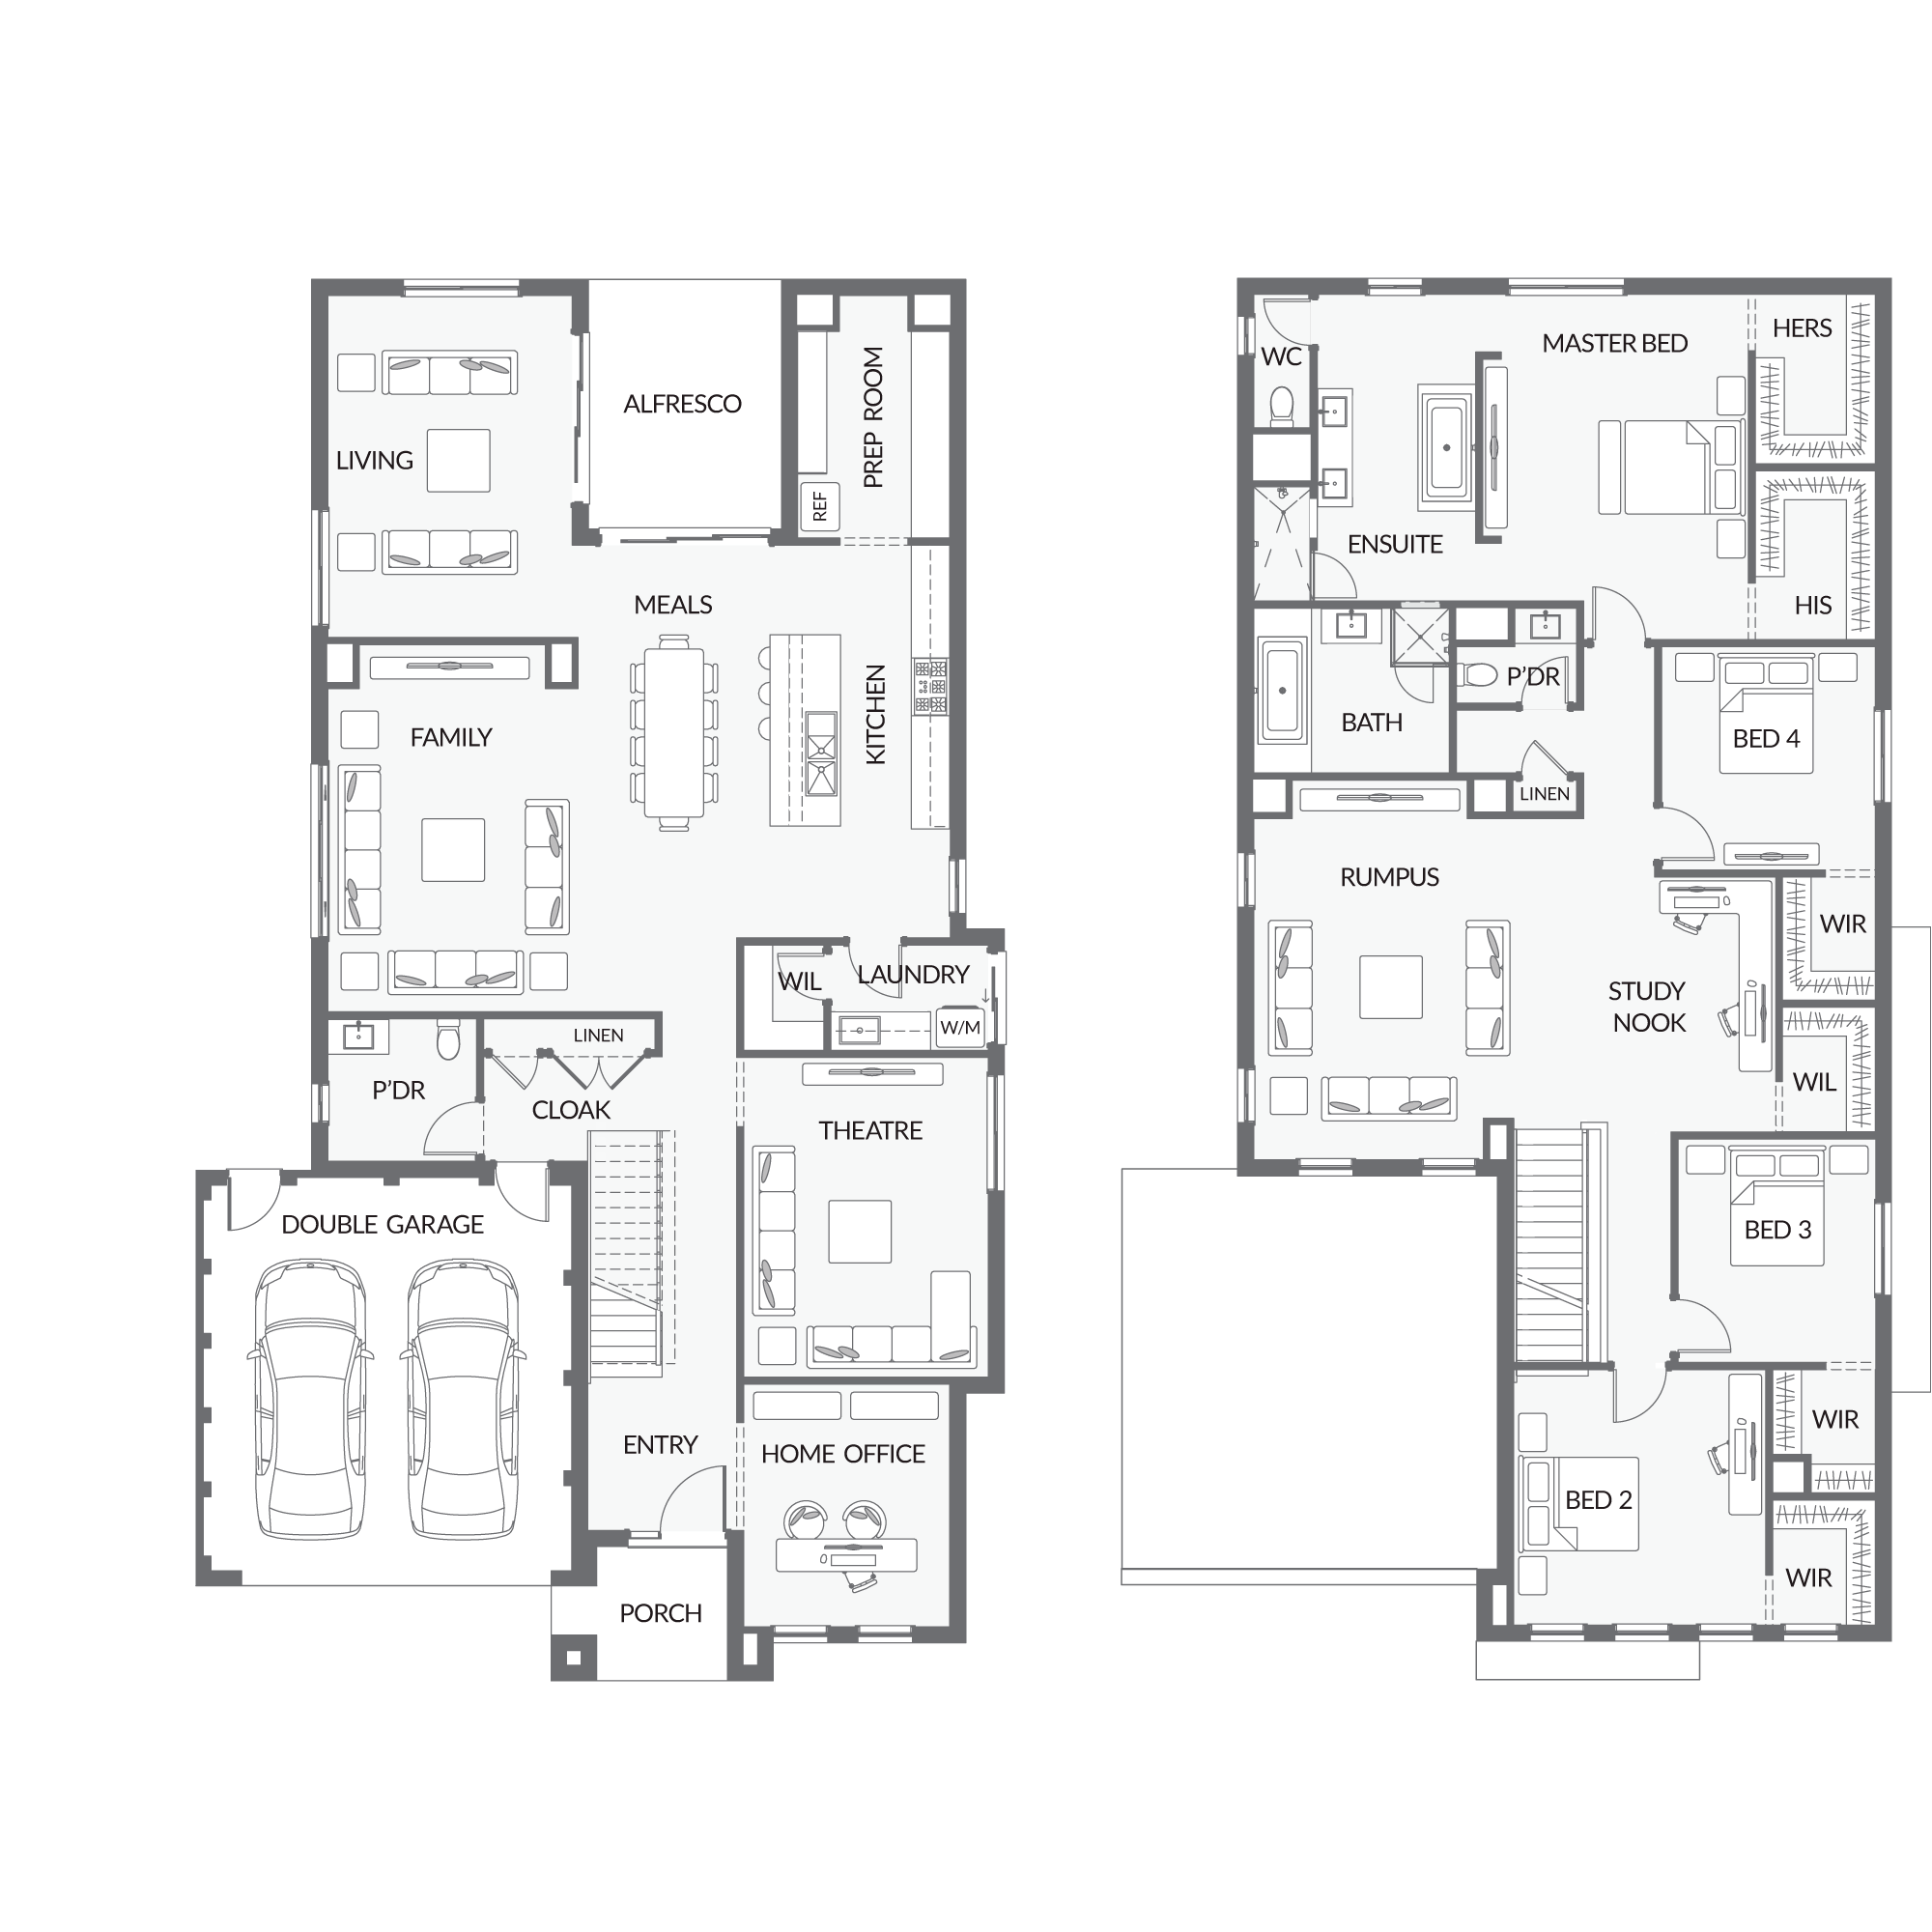 Urbanedgehomes home designs double storey autern also rh pinterest